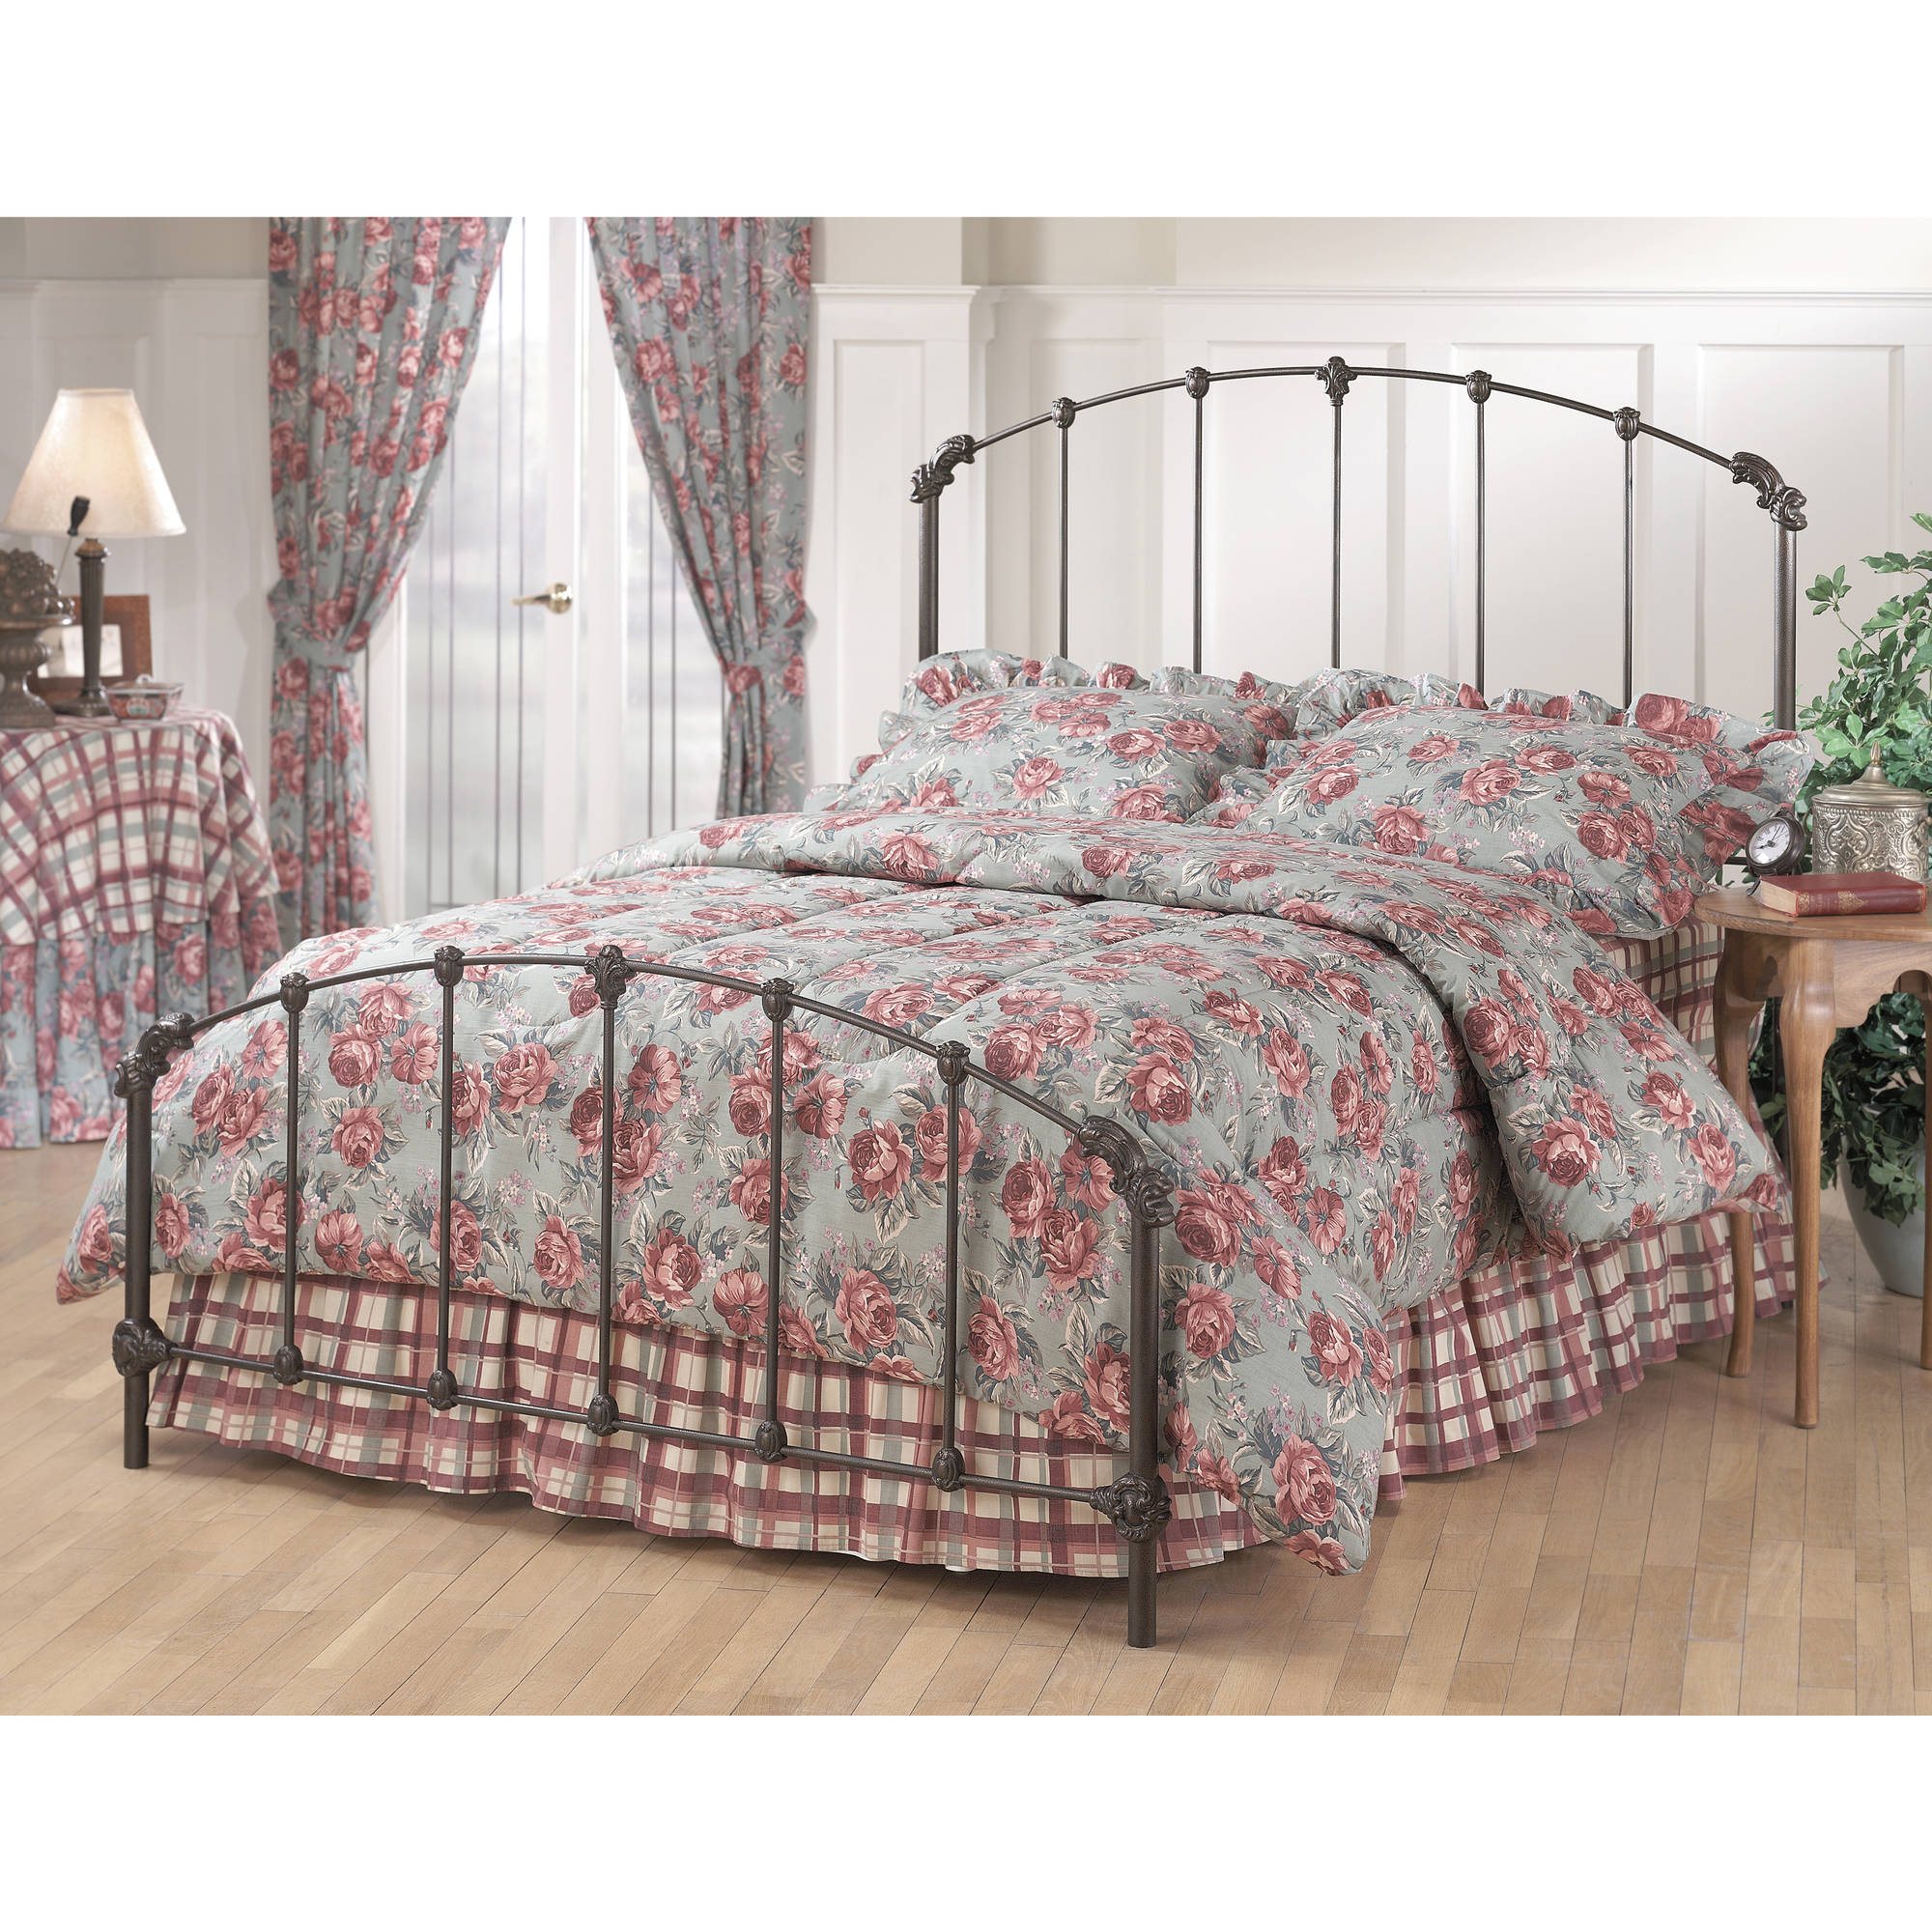 Hillsdale Furniture Bonita Full Bed with Bedframe by Hillsdale